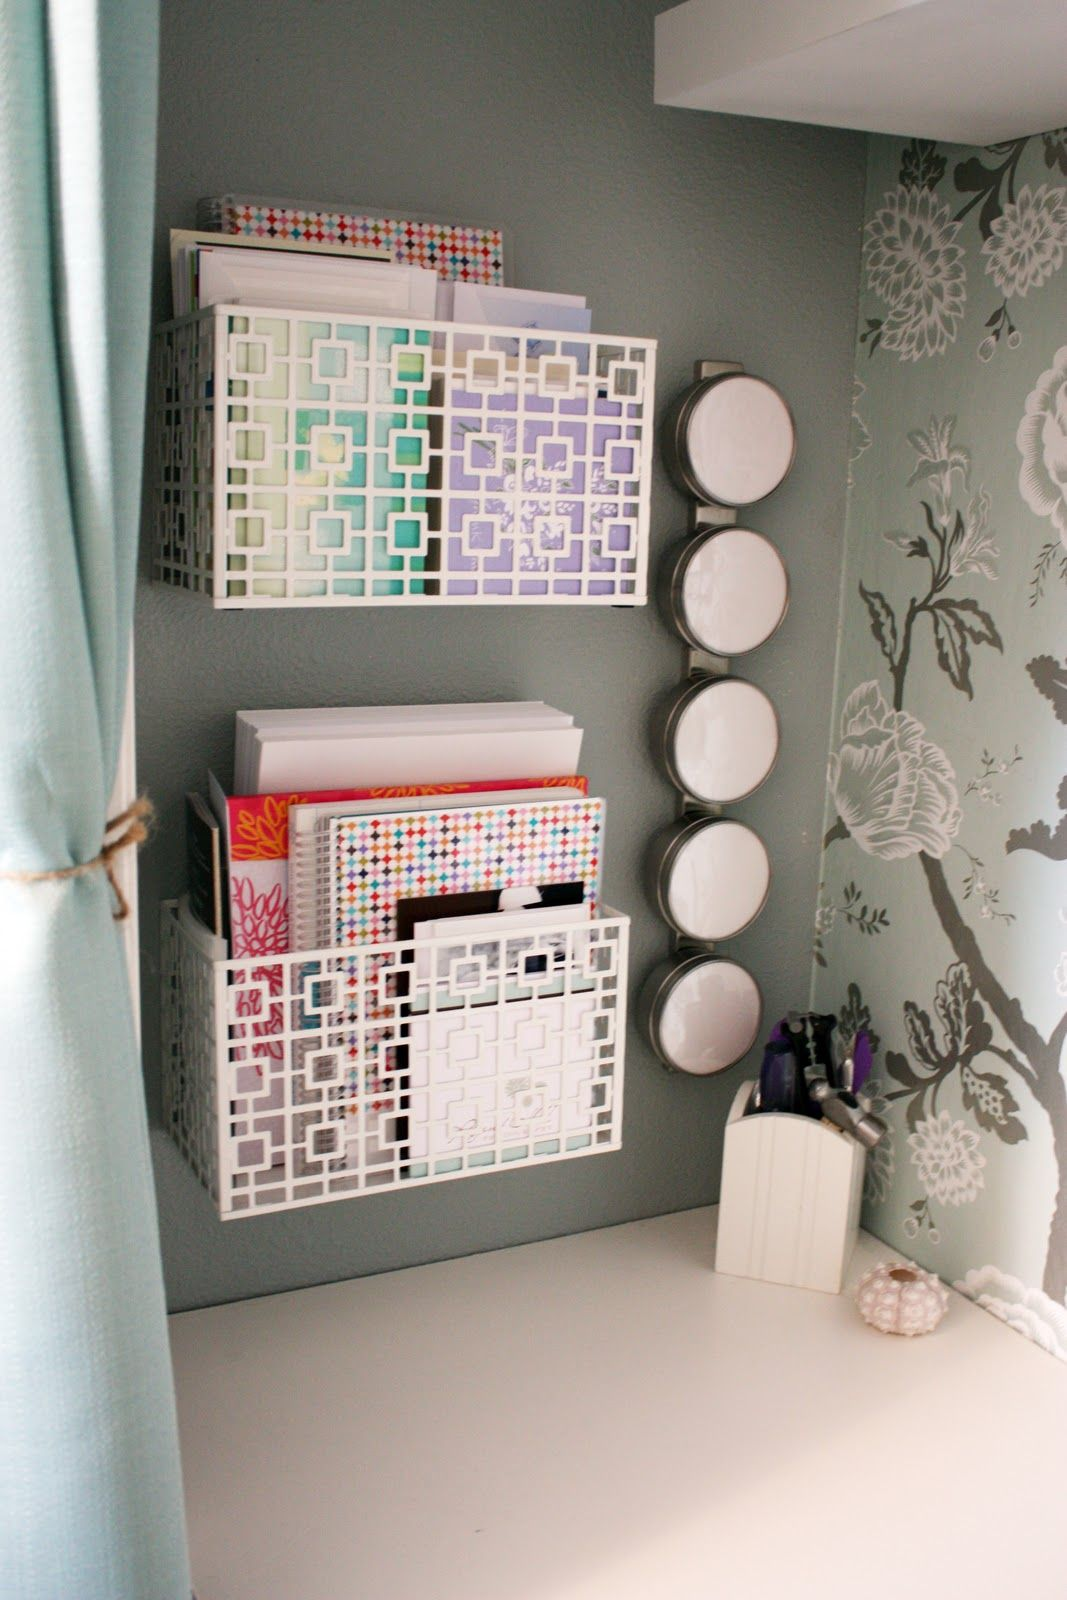 20 Cubicle Decor Ideas to Make Your Office Style Work as Hard as You Do 19  Install organizing bins to your wall